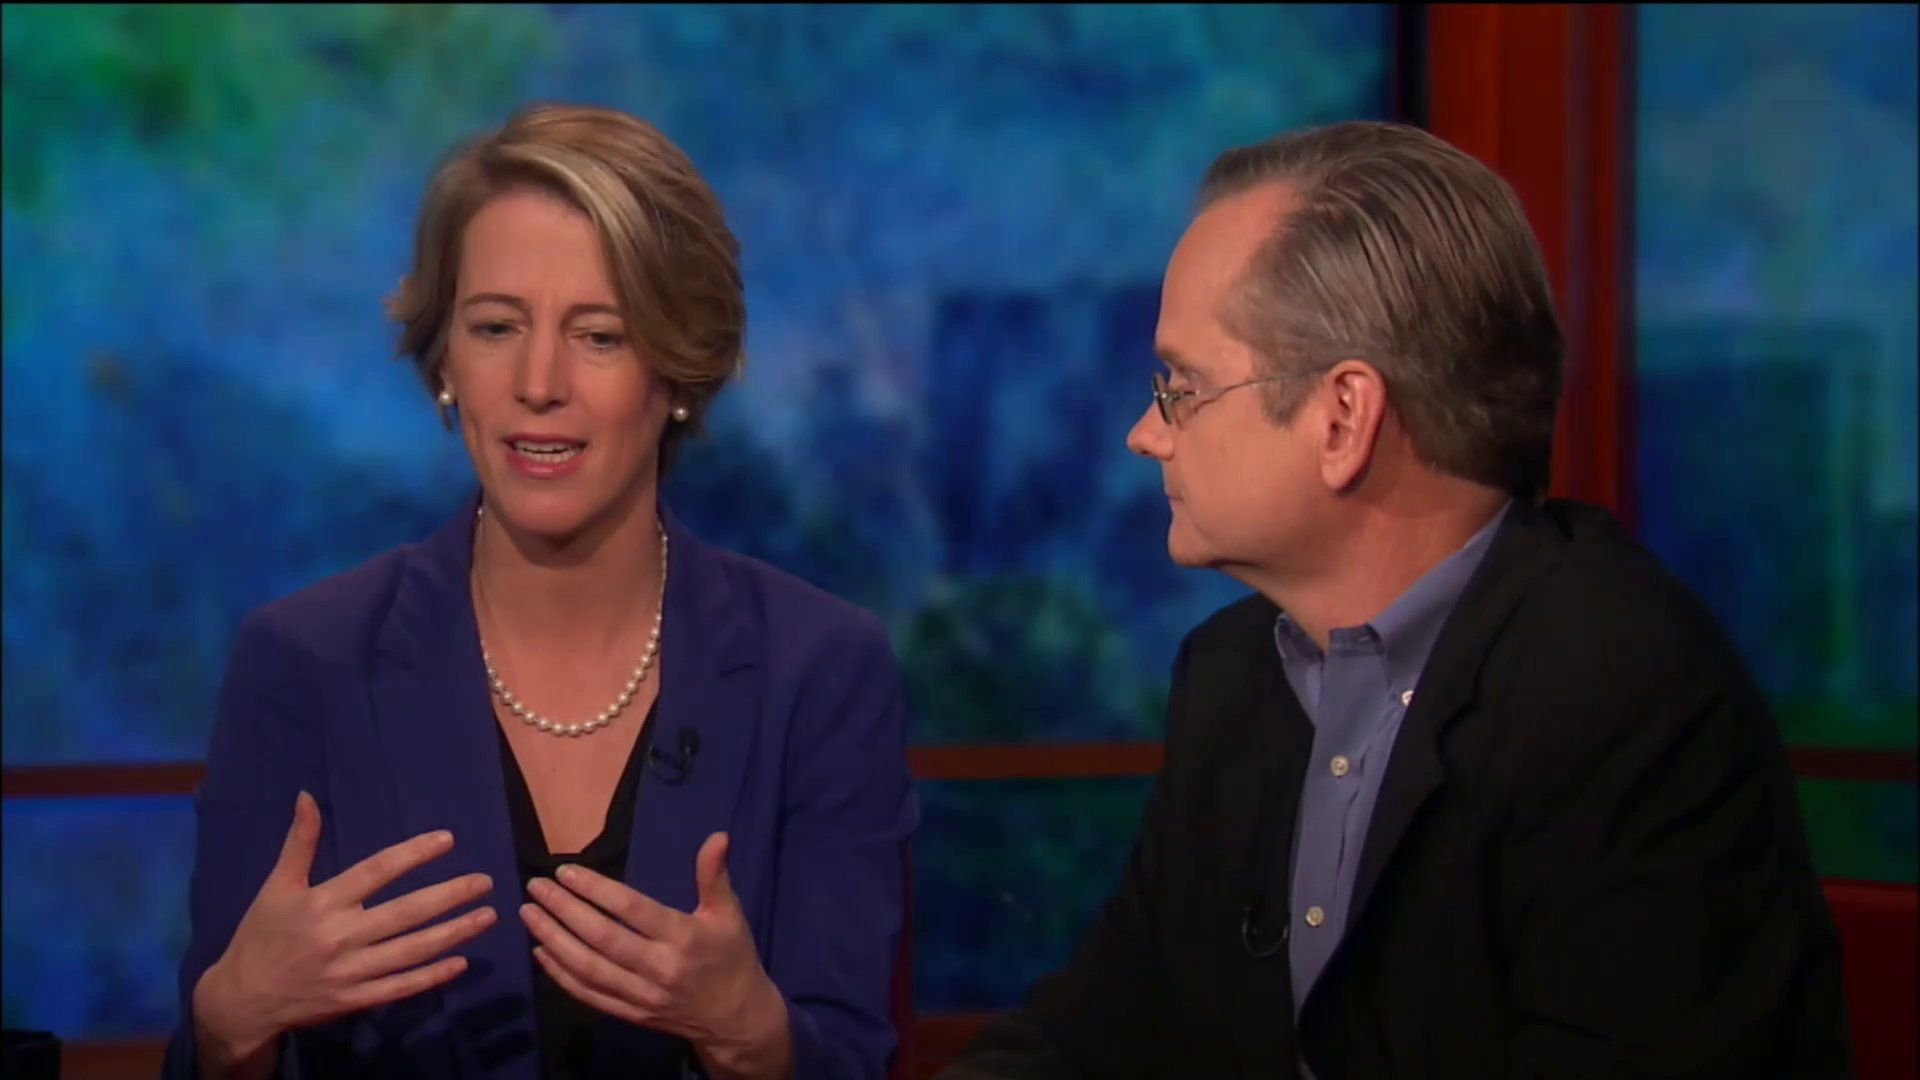 Zephyr Teachout: The Bare Knuckle Fight Against Money in Politics